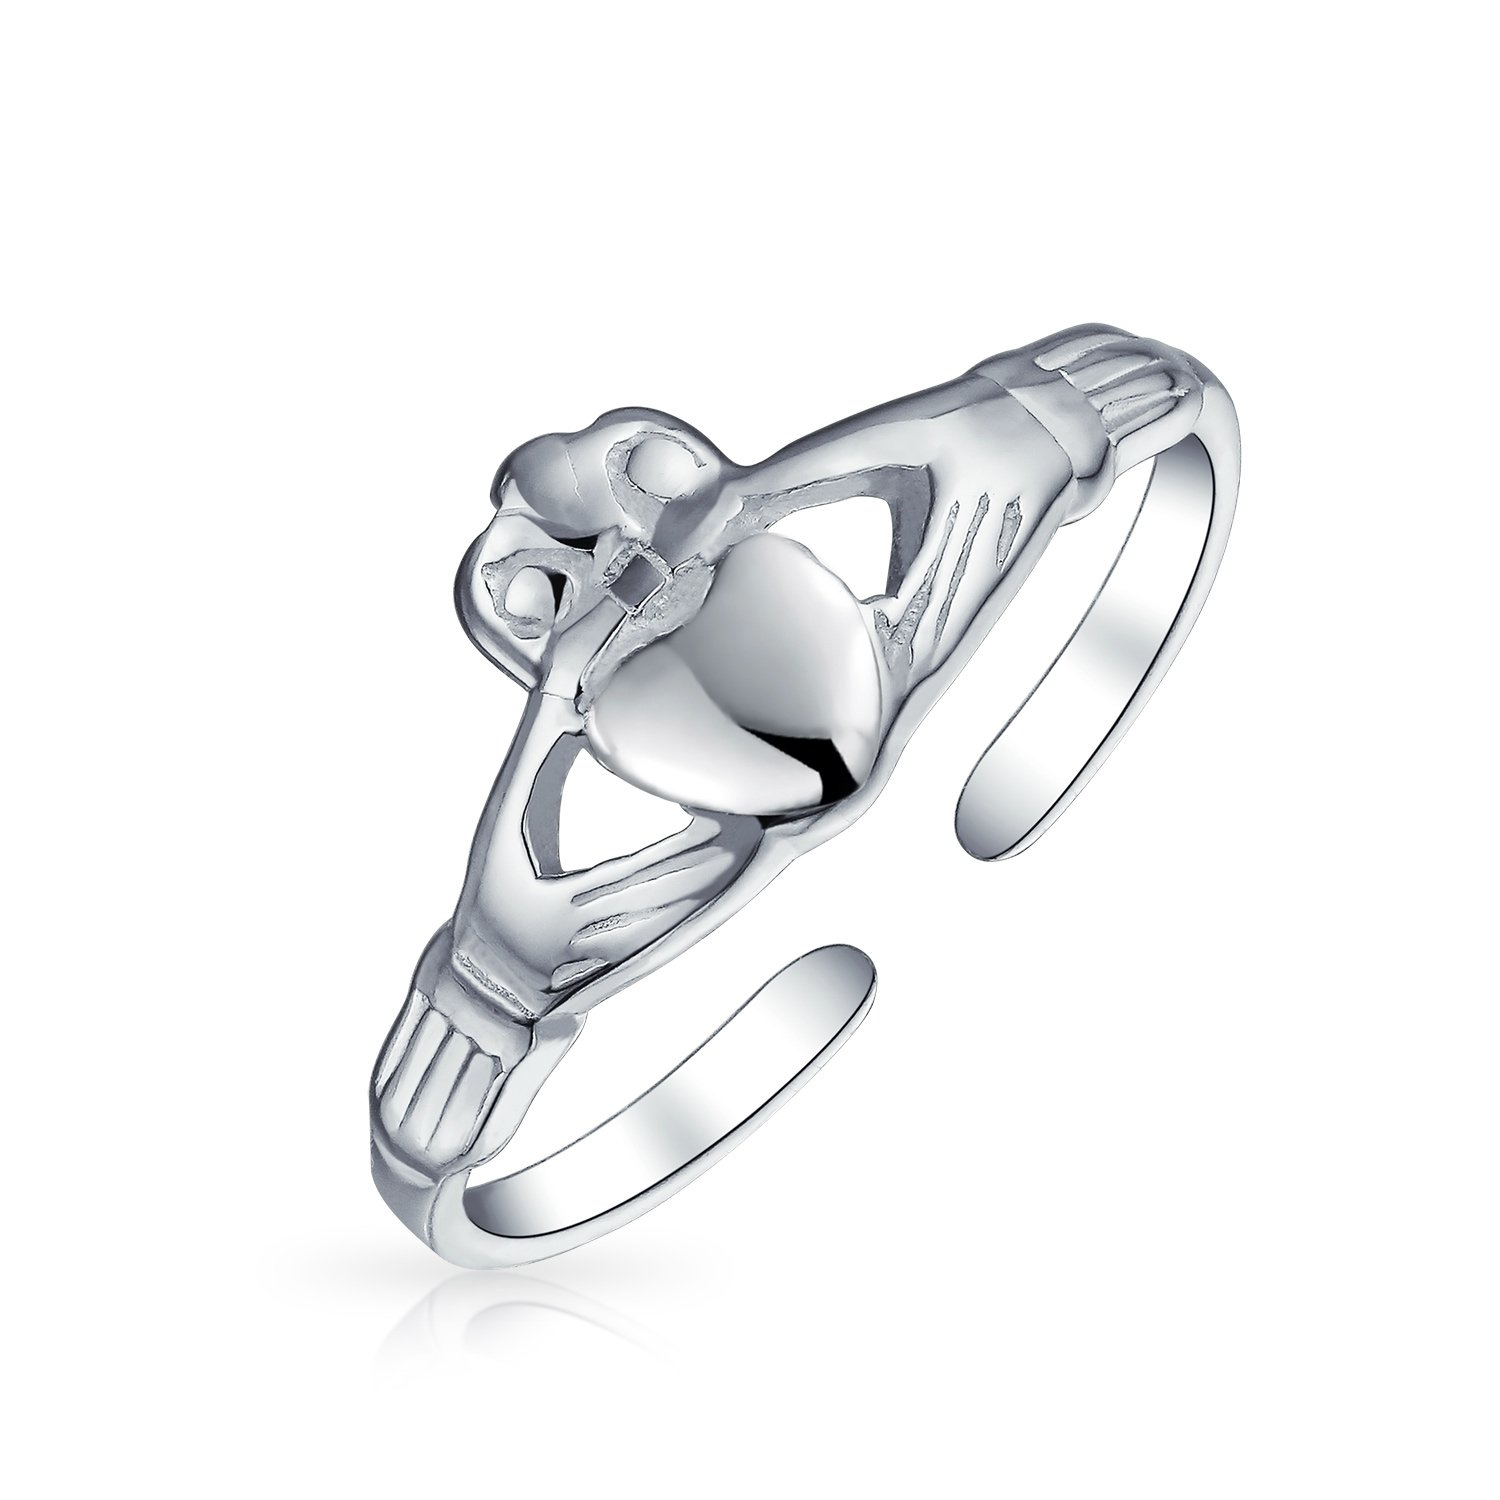 Bling Jewelry Sterling Silver Celtic Midi Ring Claddagh Heart Toe Rings PMR-R11779ED